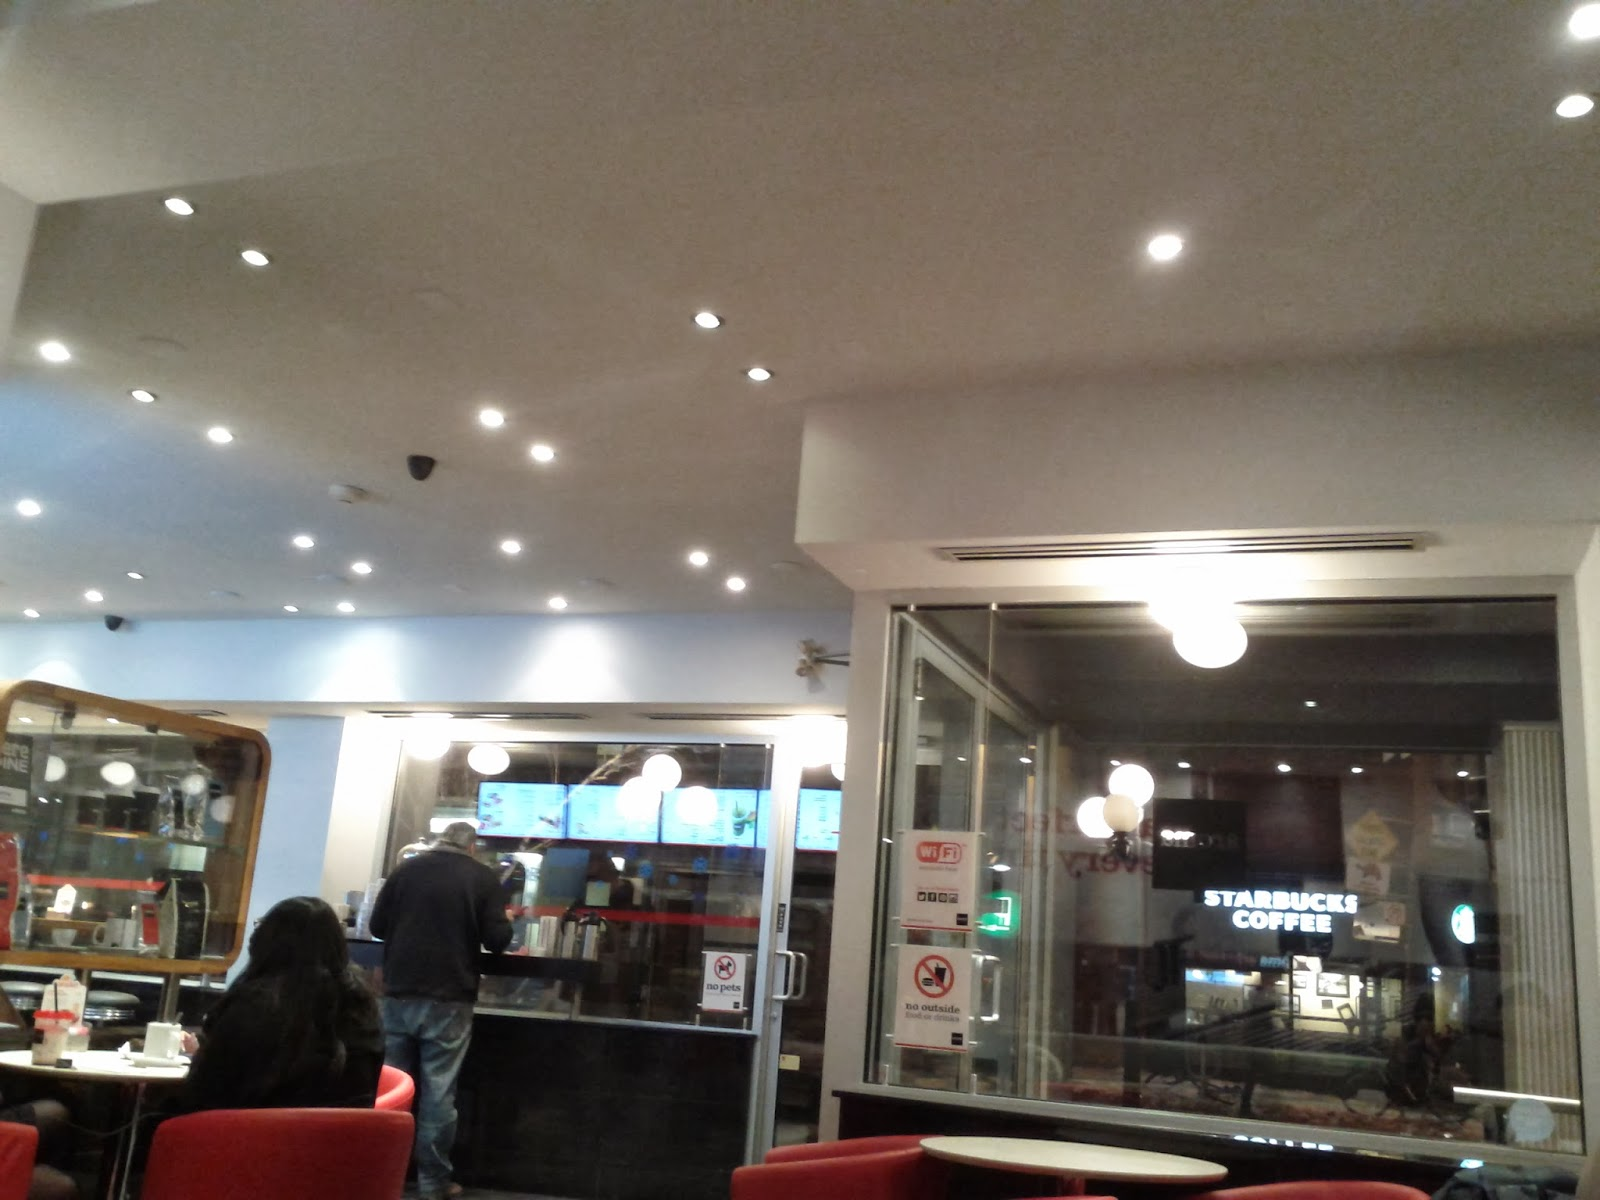 Travel Toronto Now Aroma Espresso Bar Renovated And More Bright And White At